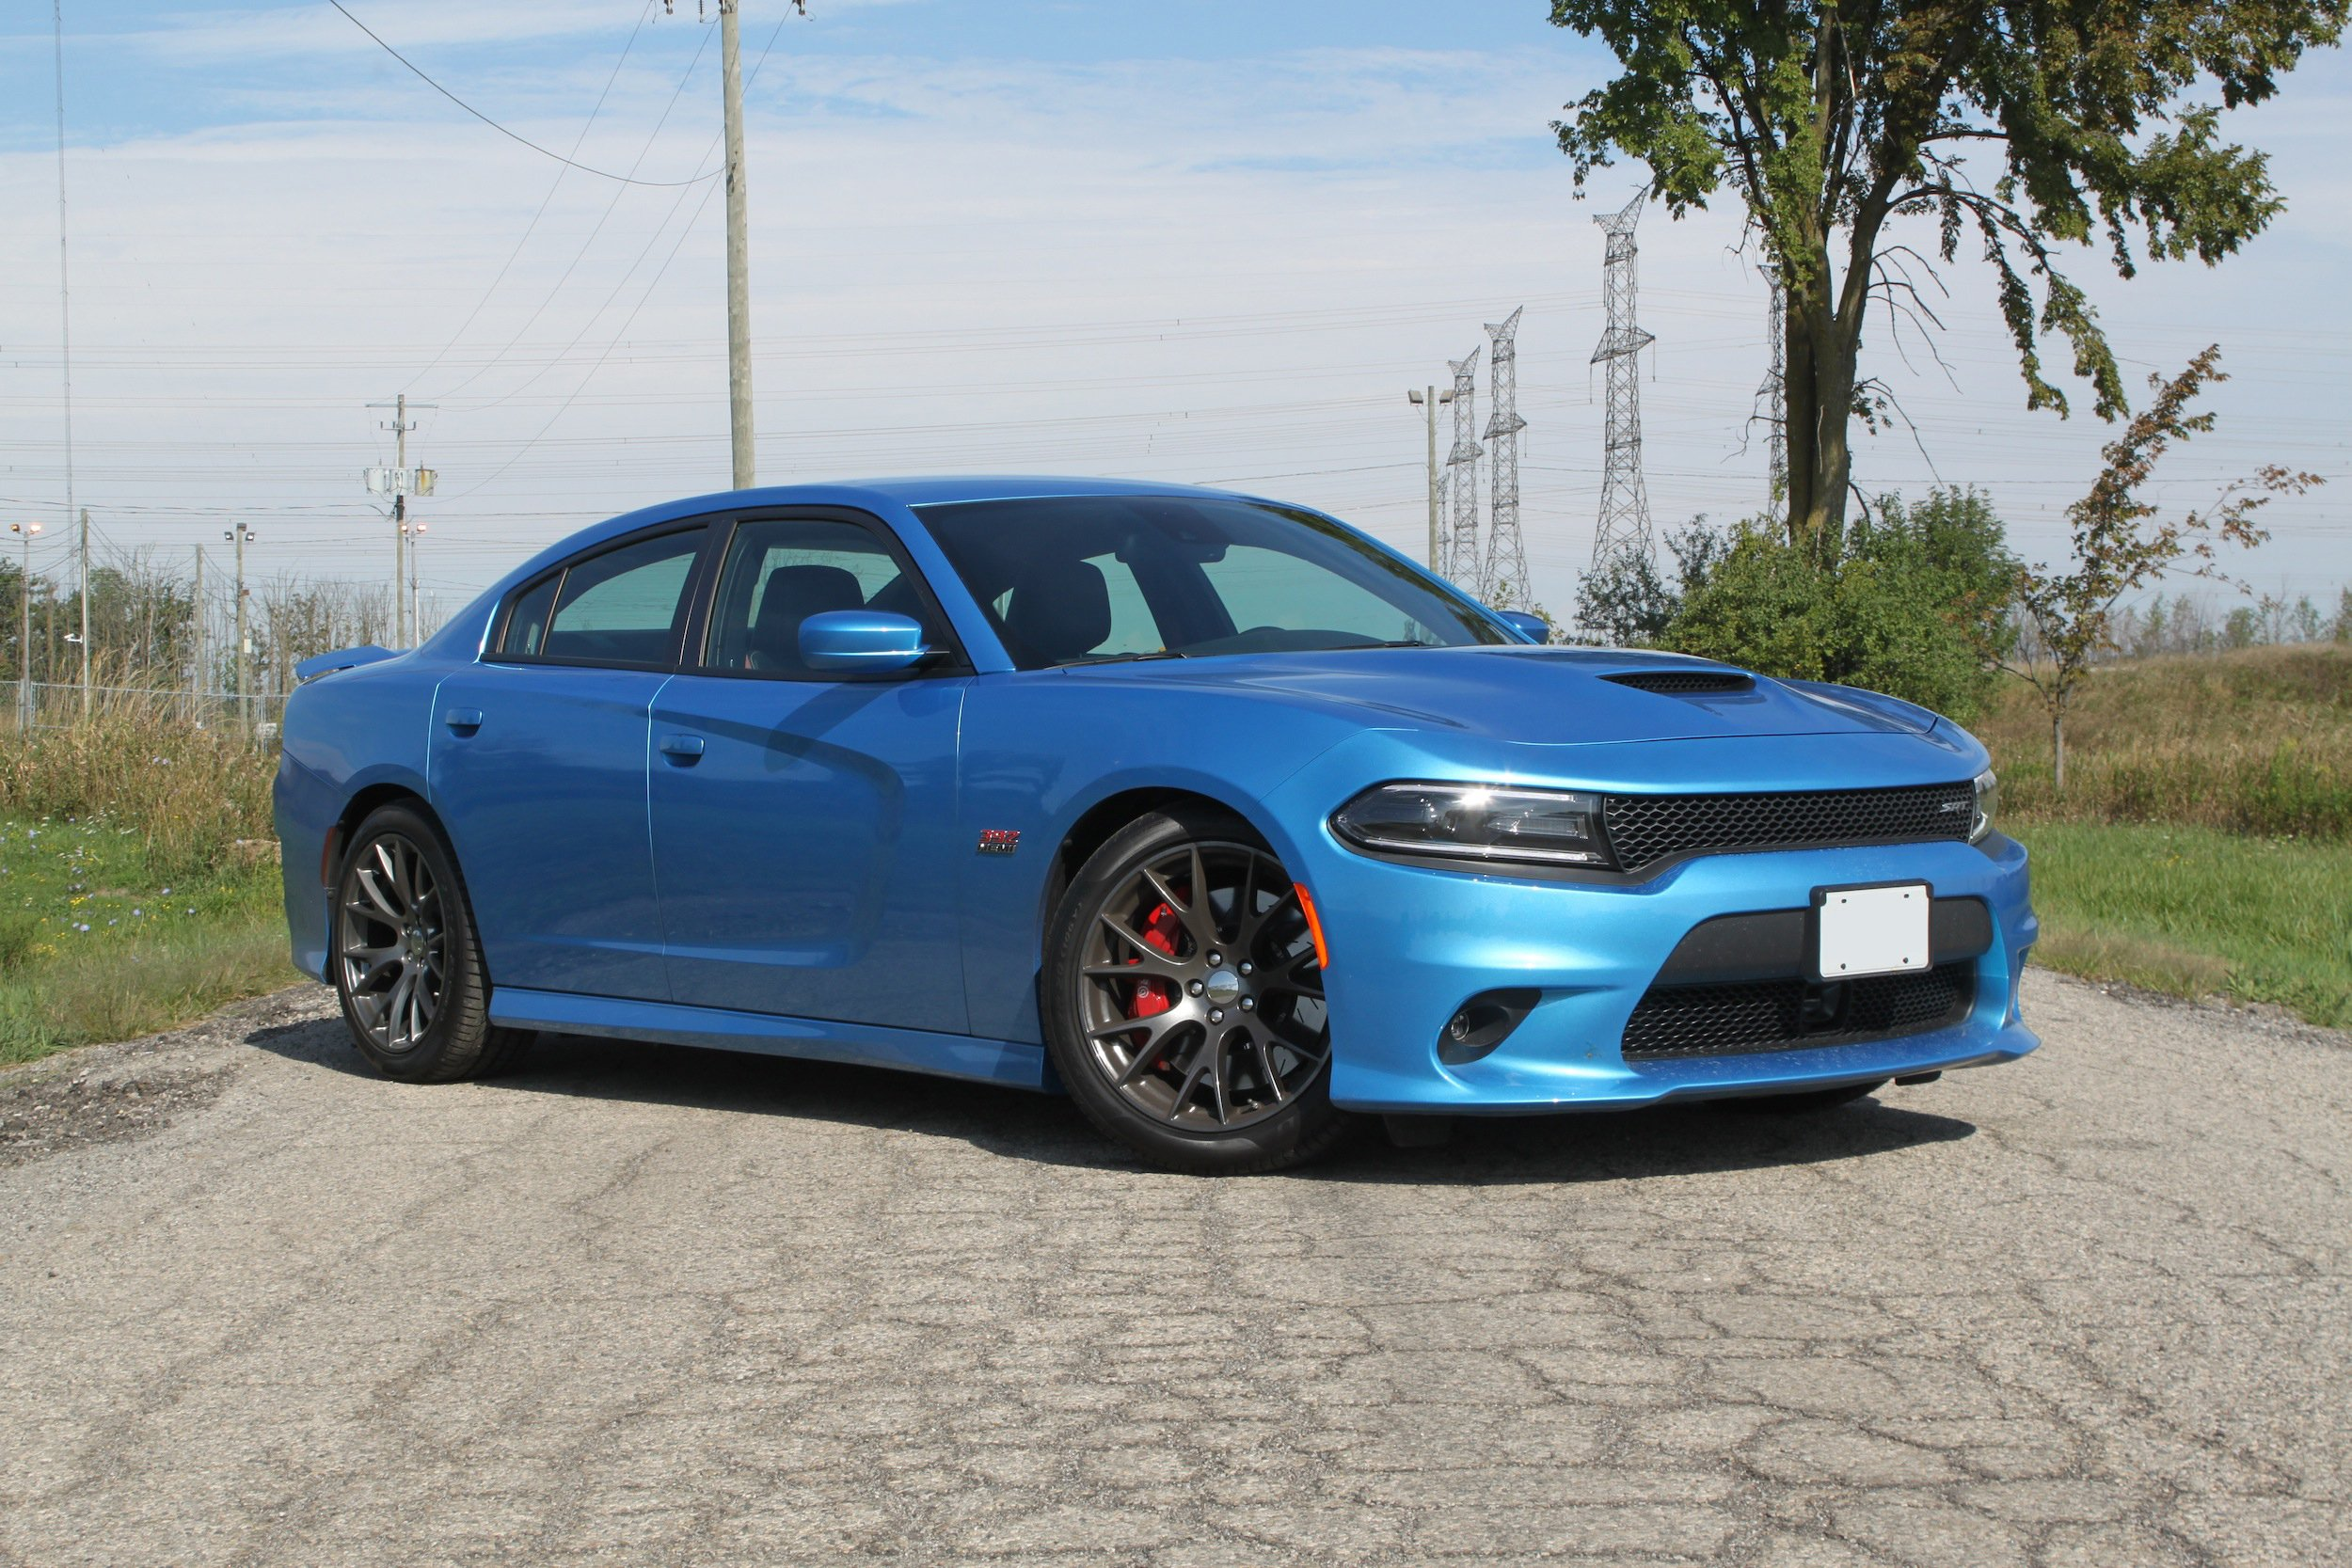 2016 Dodge Charger Srt 392 >> 2016 Dodge Charger Srt 392 Summed Up In 9 Real Quotes